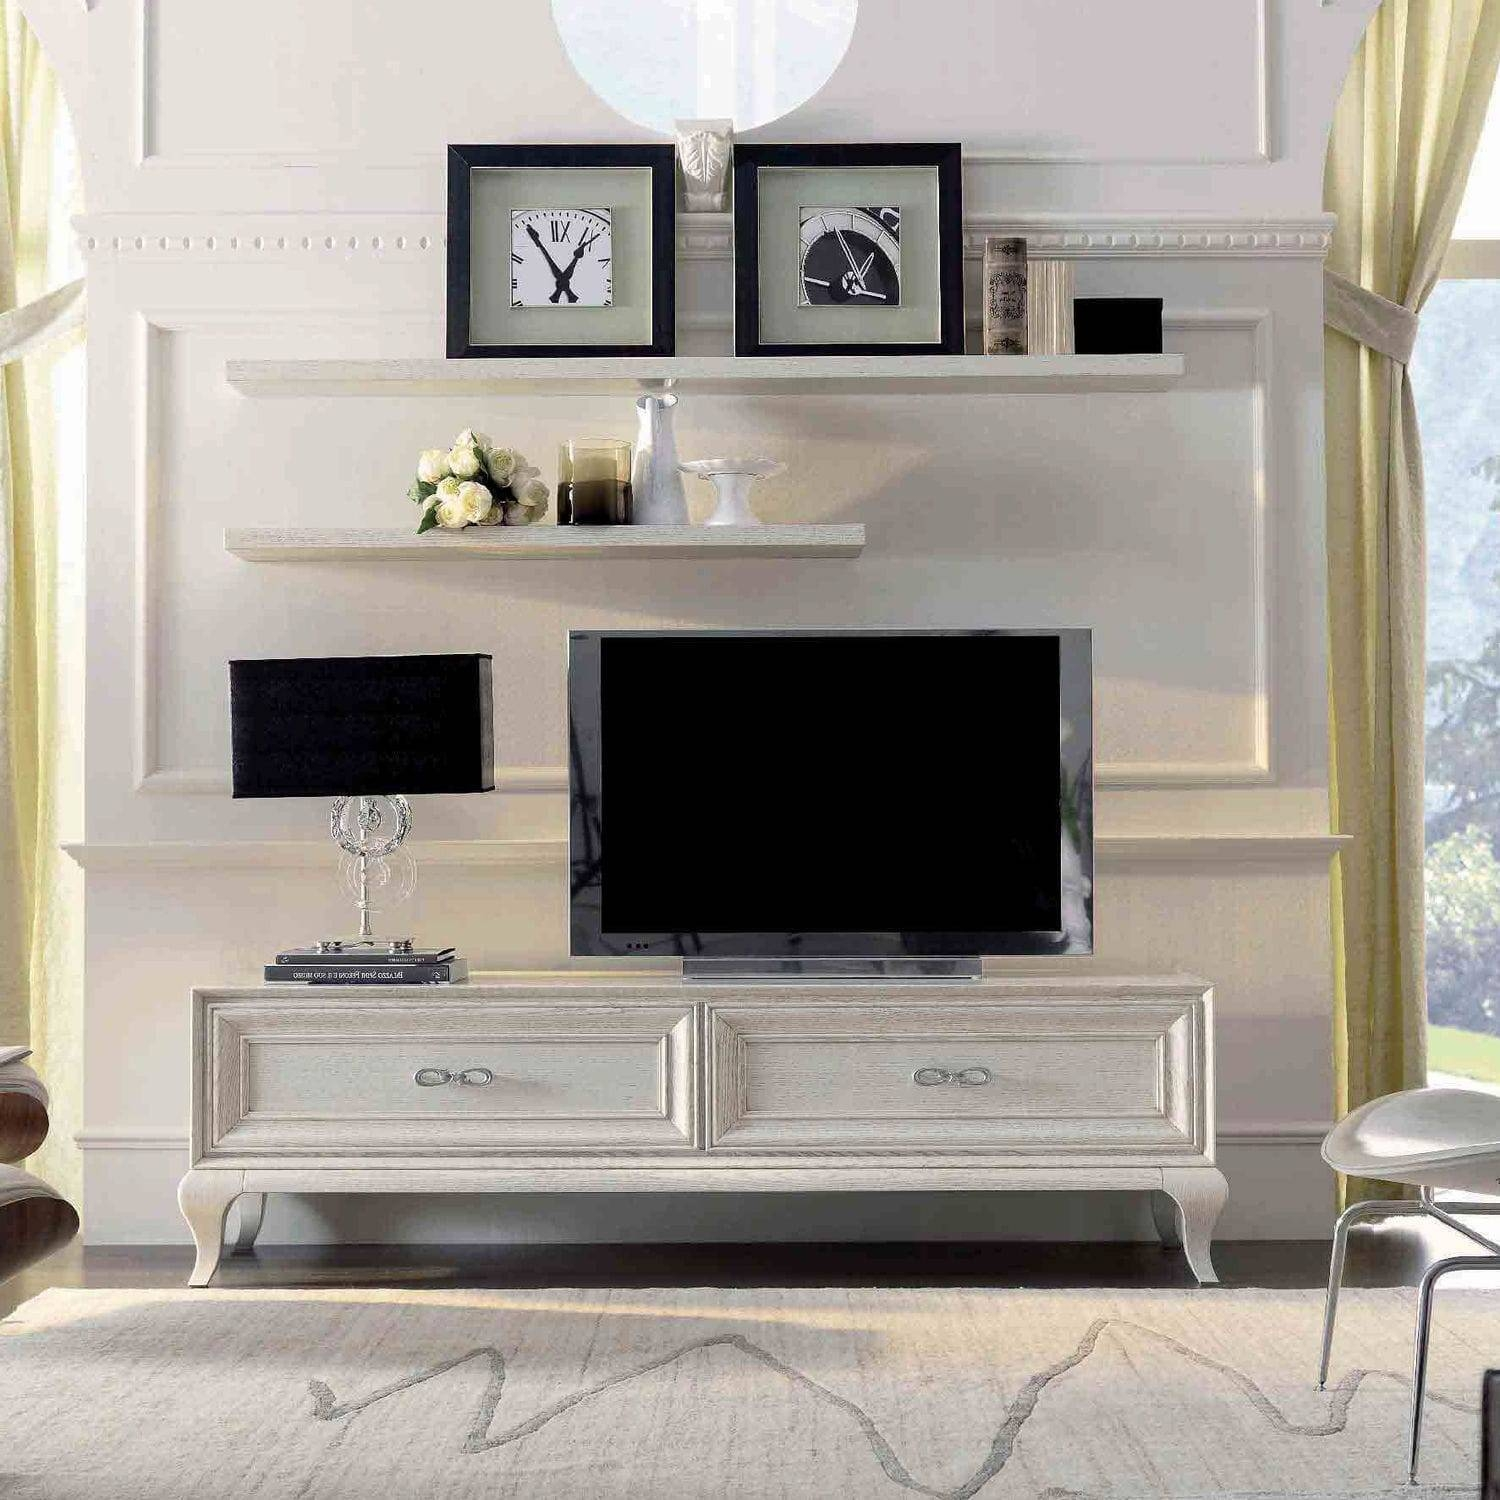 Traditional Tv Cabinet / Lacquered Wood – 9007 F1 – Mozzo Giorgio Within Traditional Tv Cabinets (View 5 of 15)